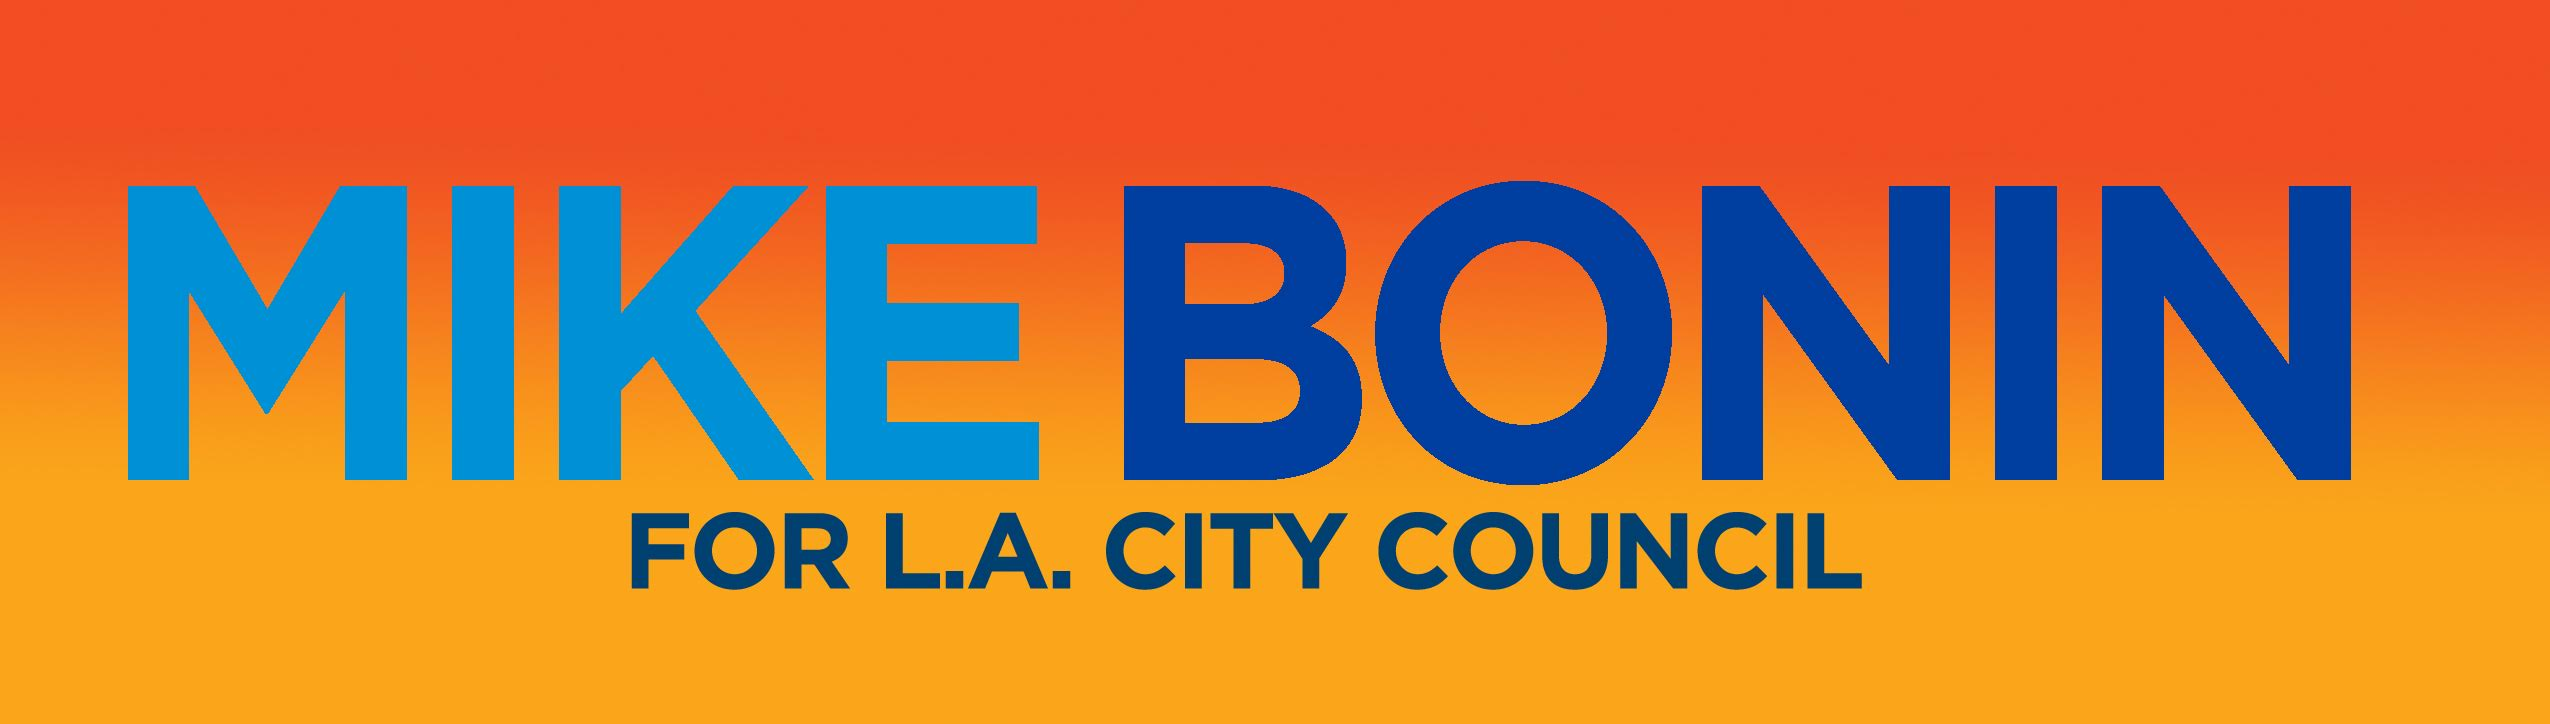 Mike_Bonin_for_LA_City_Council_LOGO.jpg